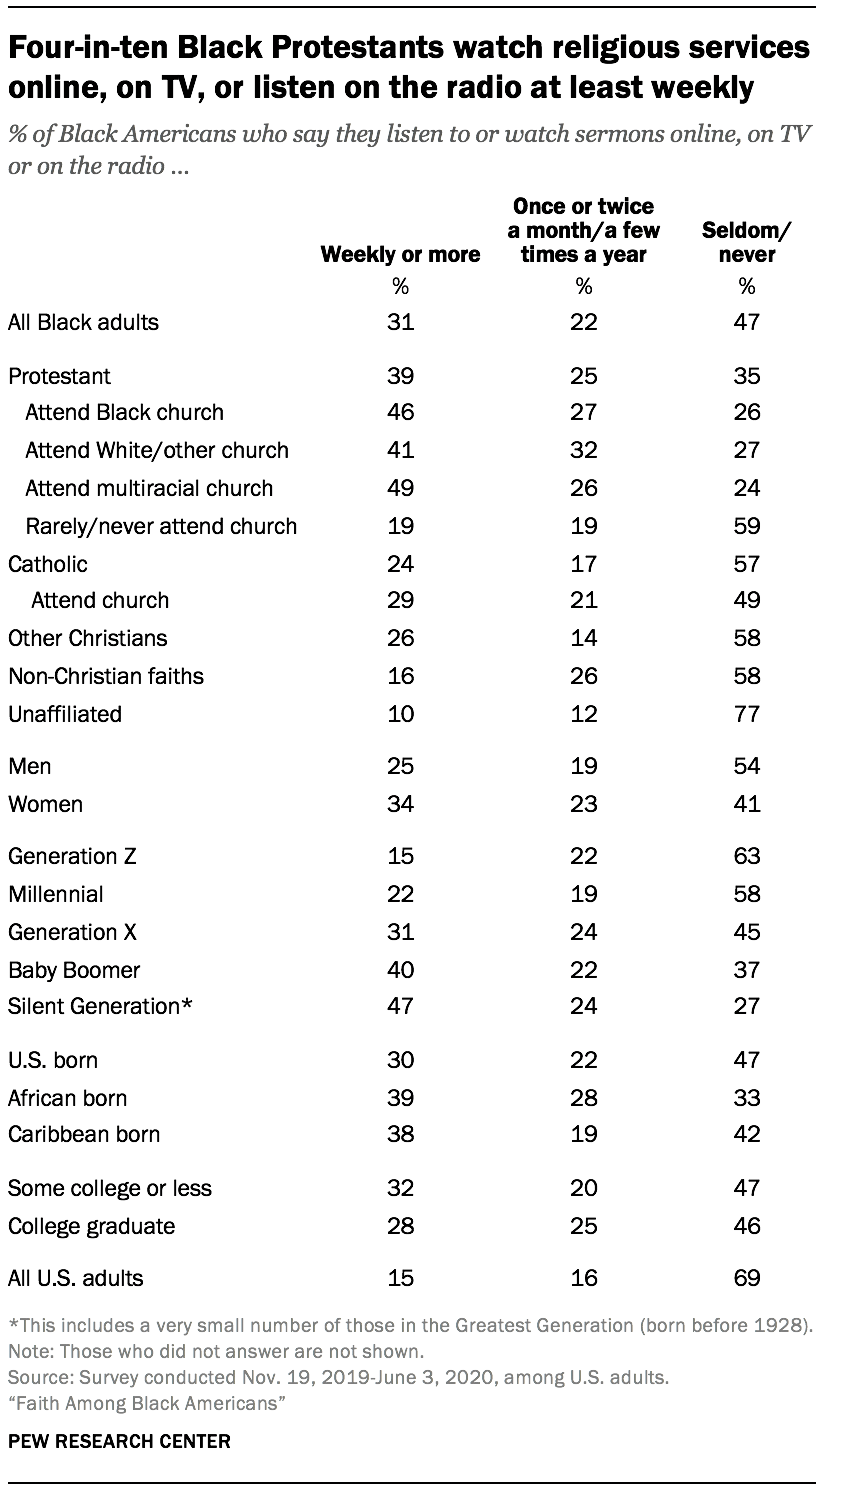 Four-in-ten Black Protestants watch religious services online, on TV, or listen on the radio at least weekly